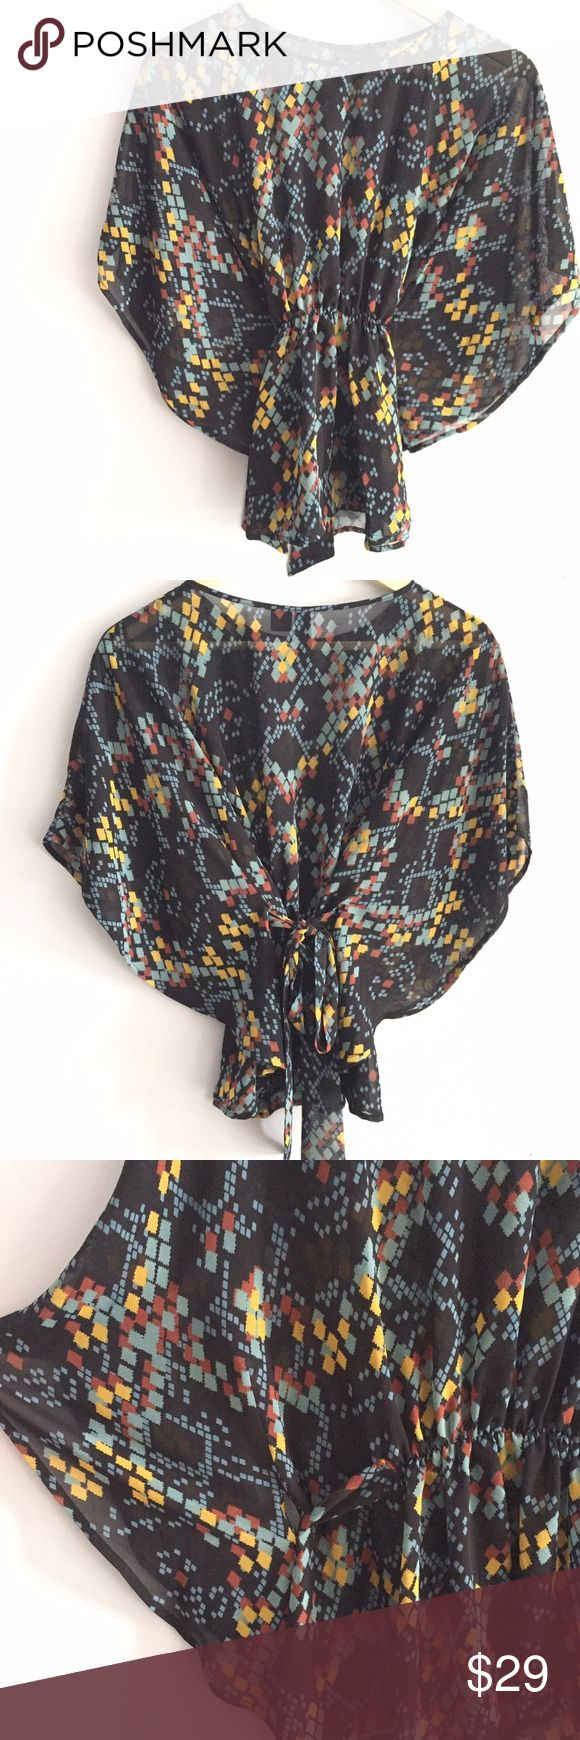 🆕 Listing! Patterned batwing sheer style top Amazing statement top! Gorgeous blend of burgundy, mustard yellow, and ice blue colors. Stretch waist with tie in back. Flattering batwing fit. 100% polyester. Length is 23in. untied and laying flat, from side to side, is 32 3/4in. Very sheer & flowy. Petticoat Alley Tops